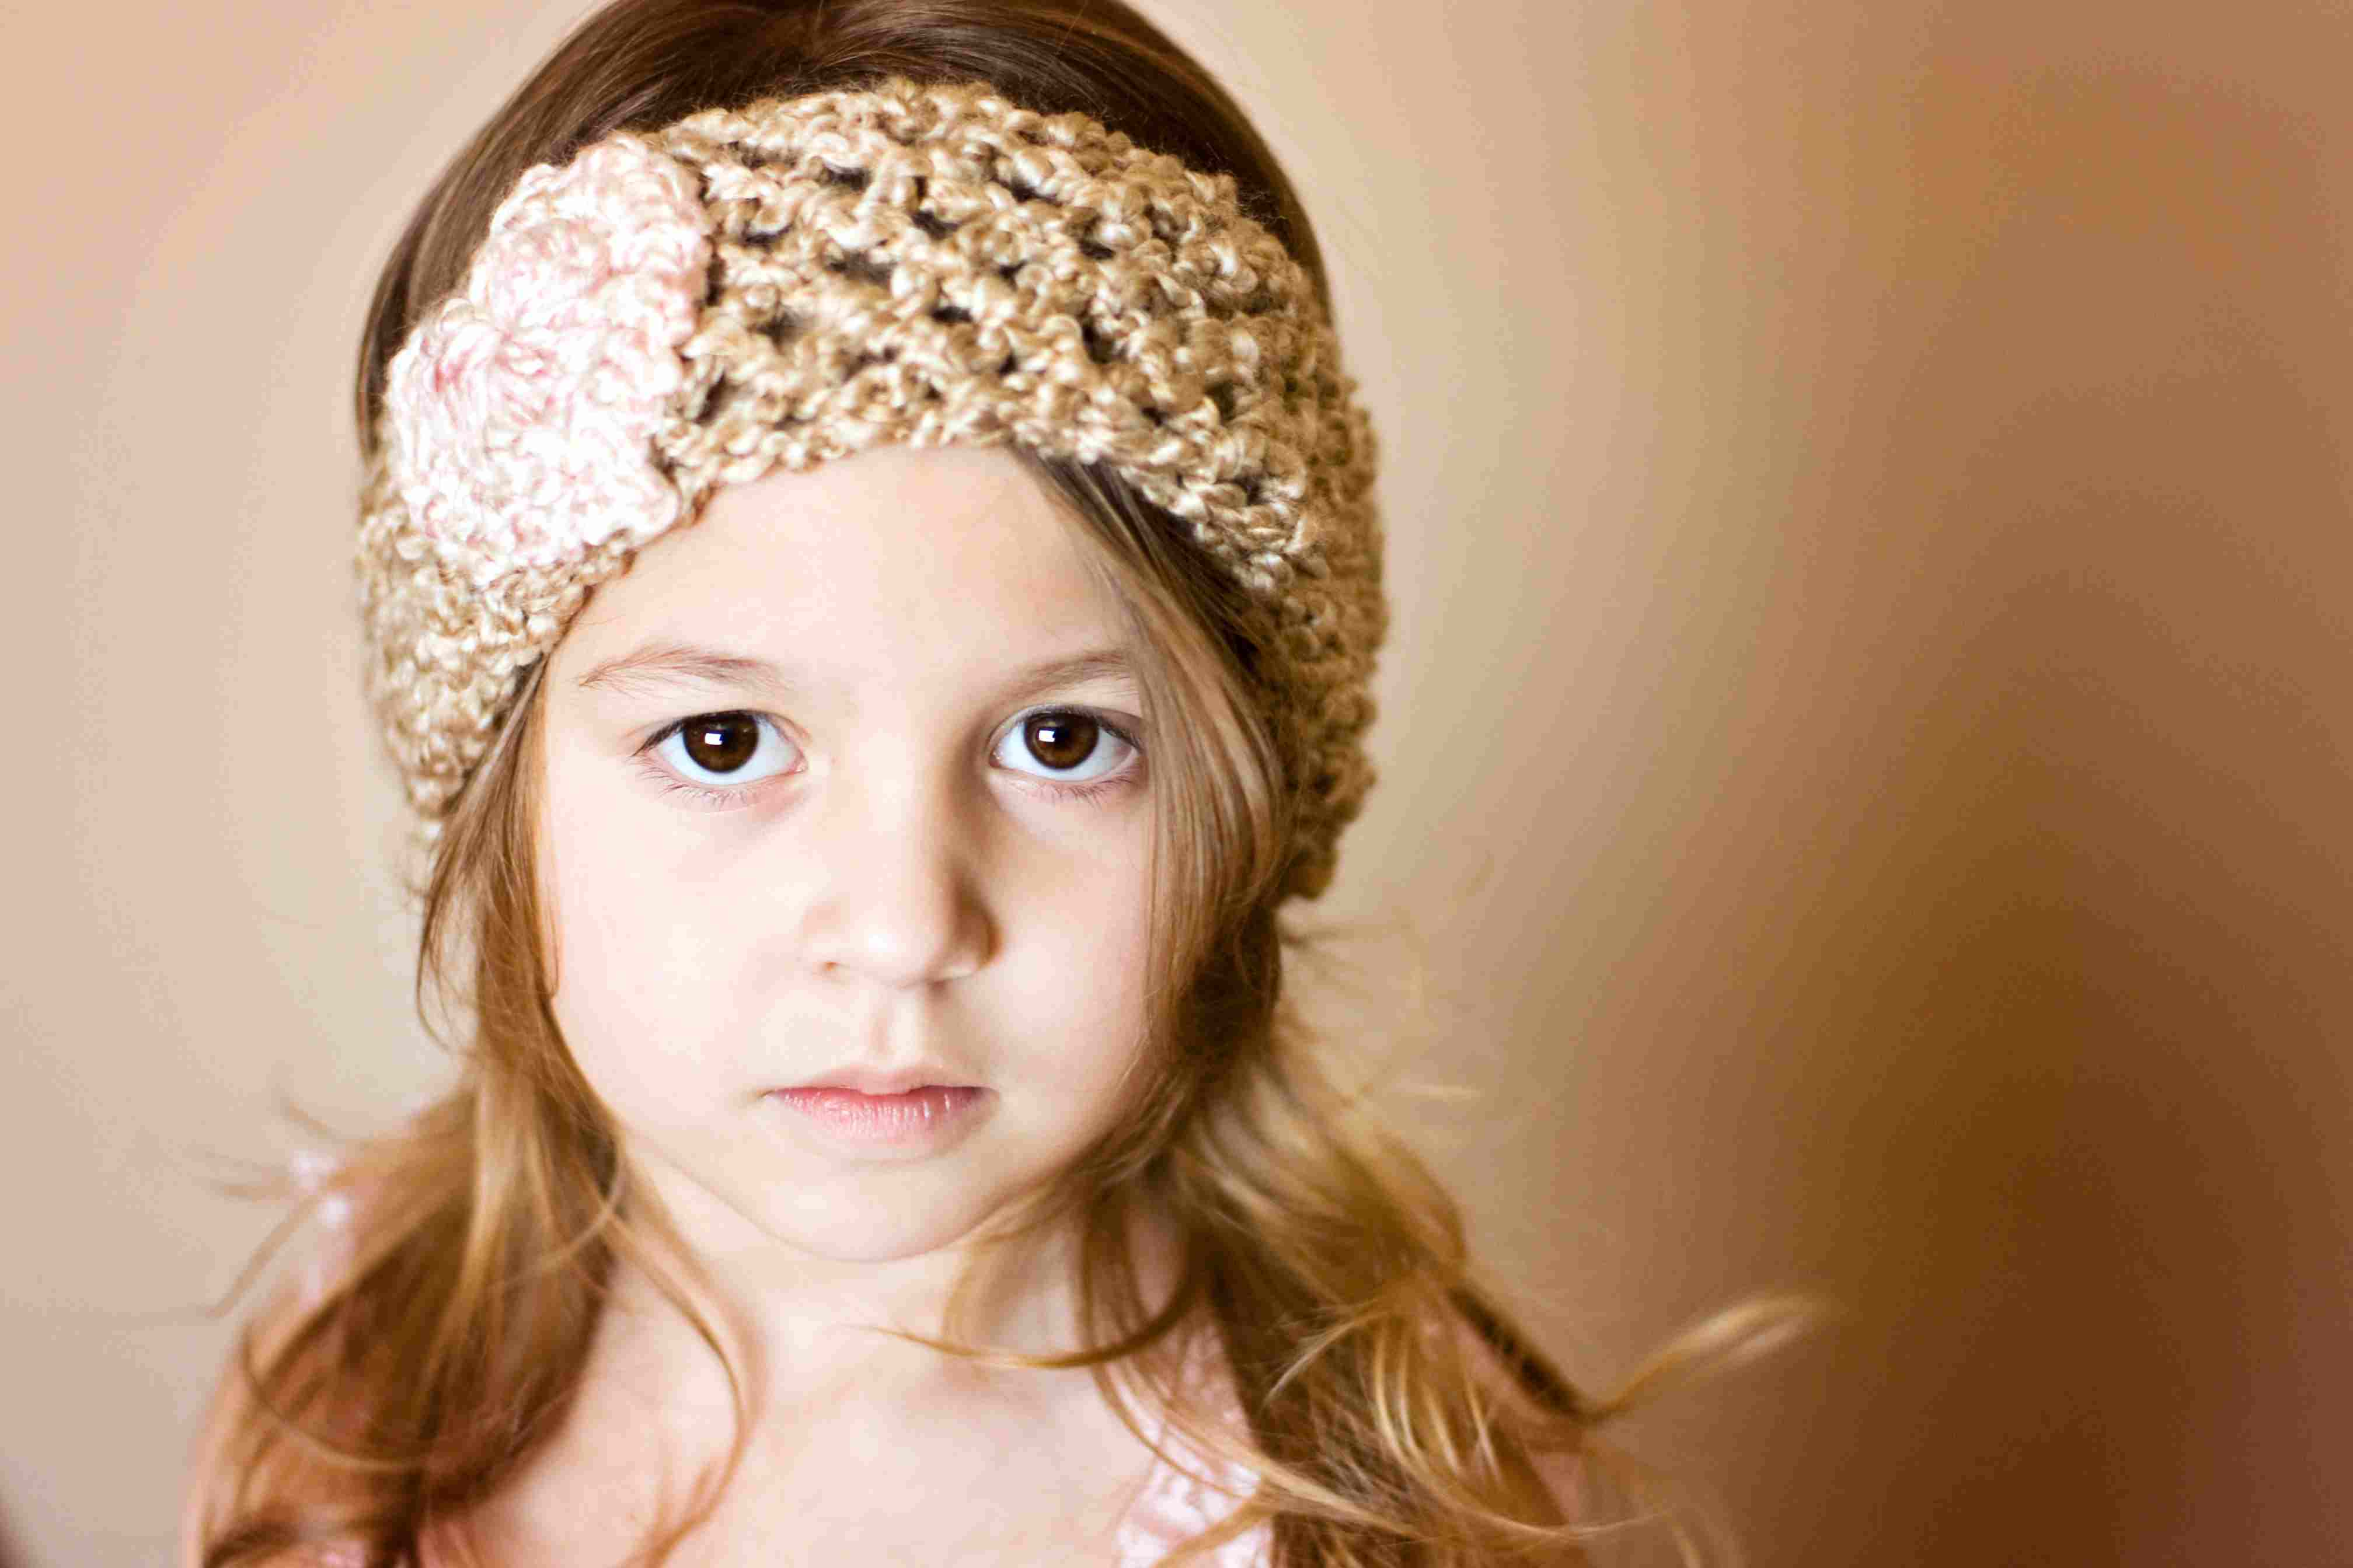 Handmade crocheted earwarmers worn by a young girl